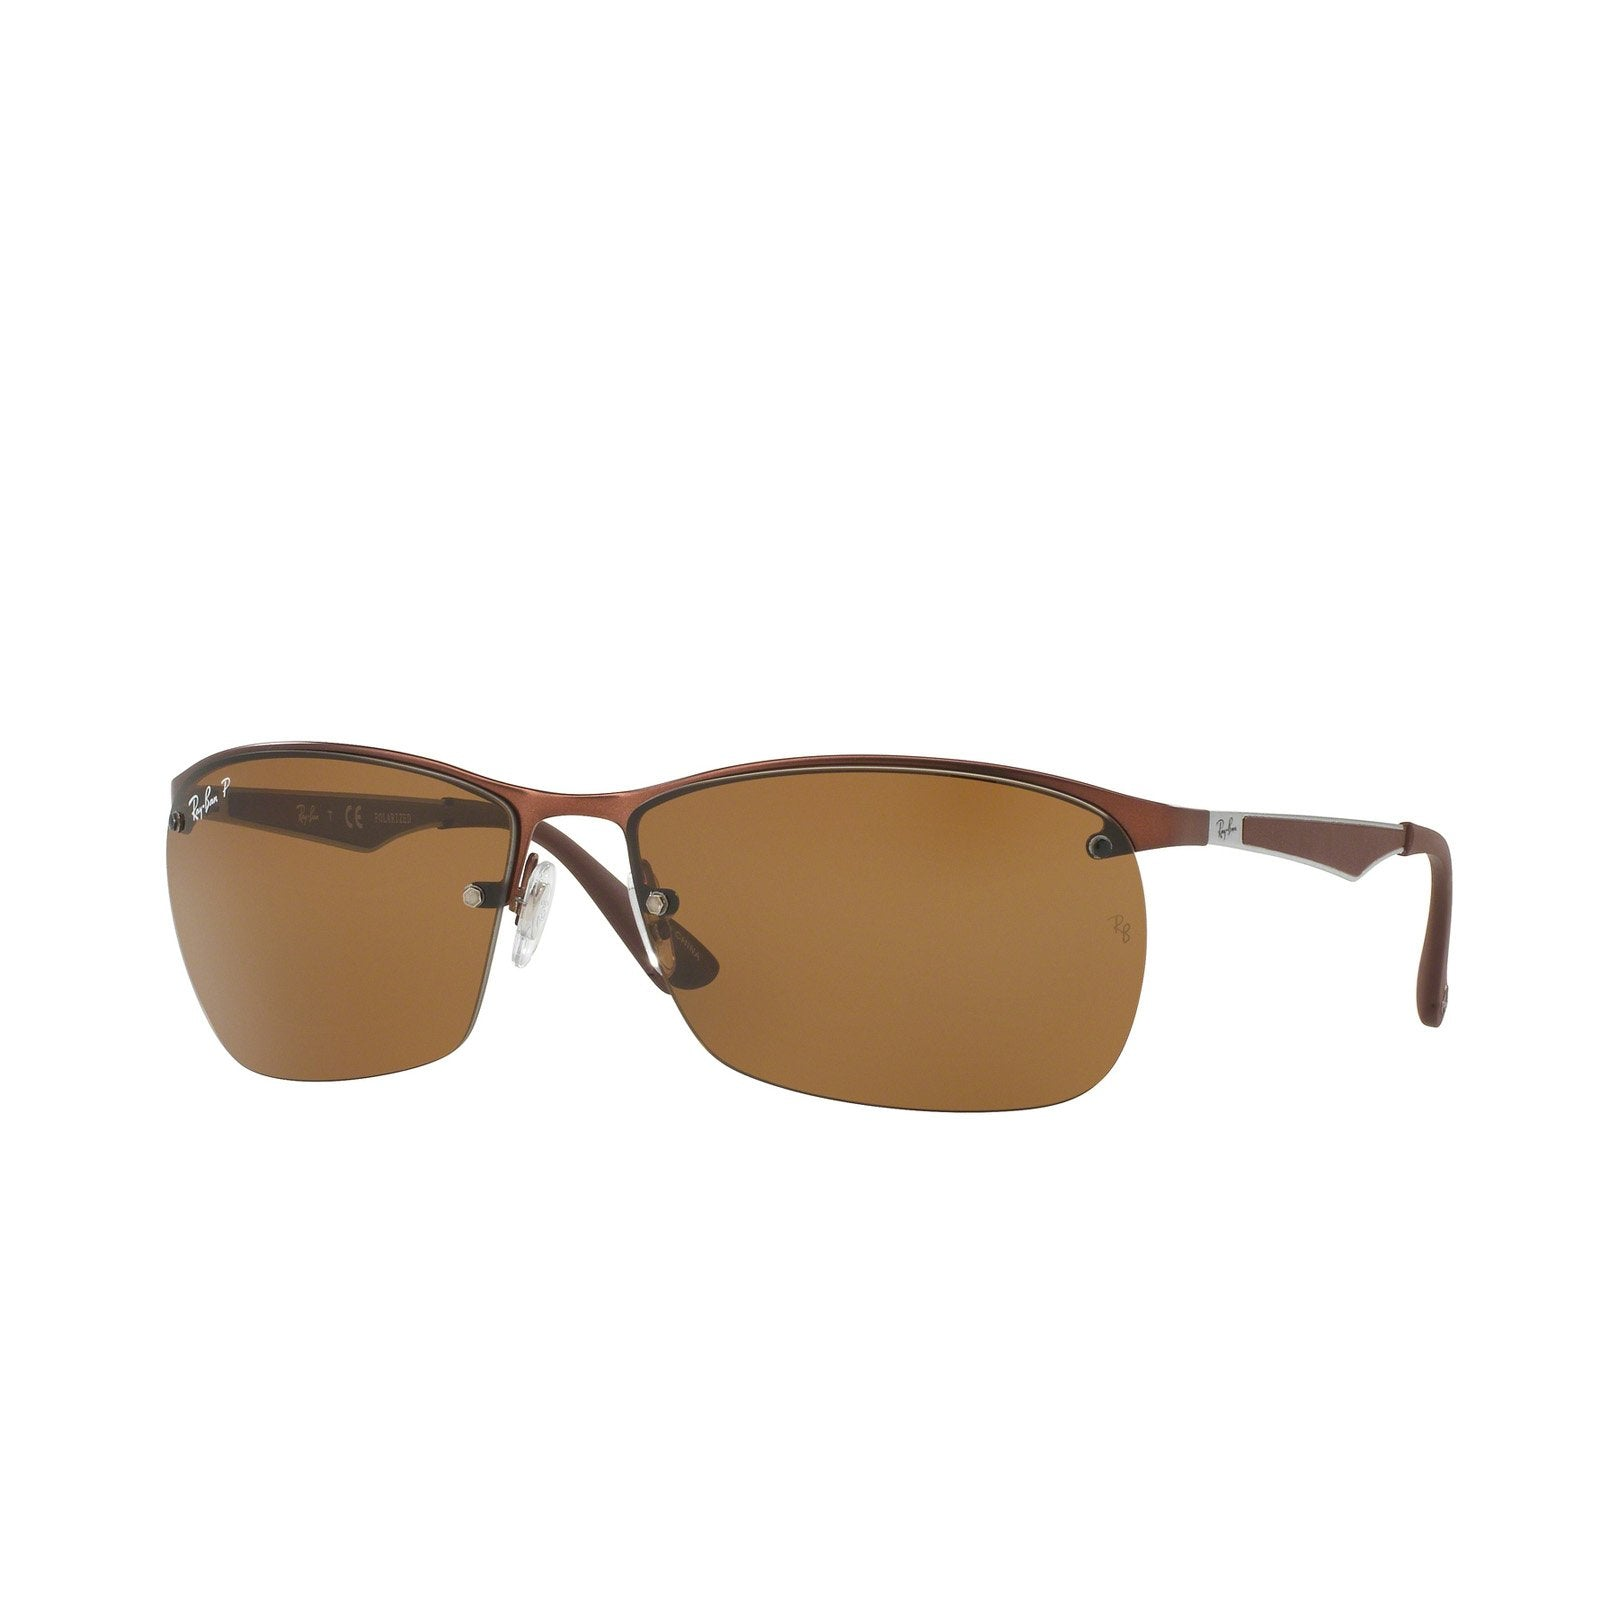 Ray-Ban RB3550 012/83 Sunglasses